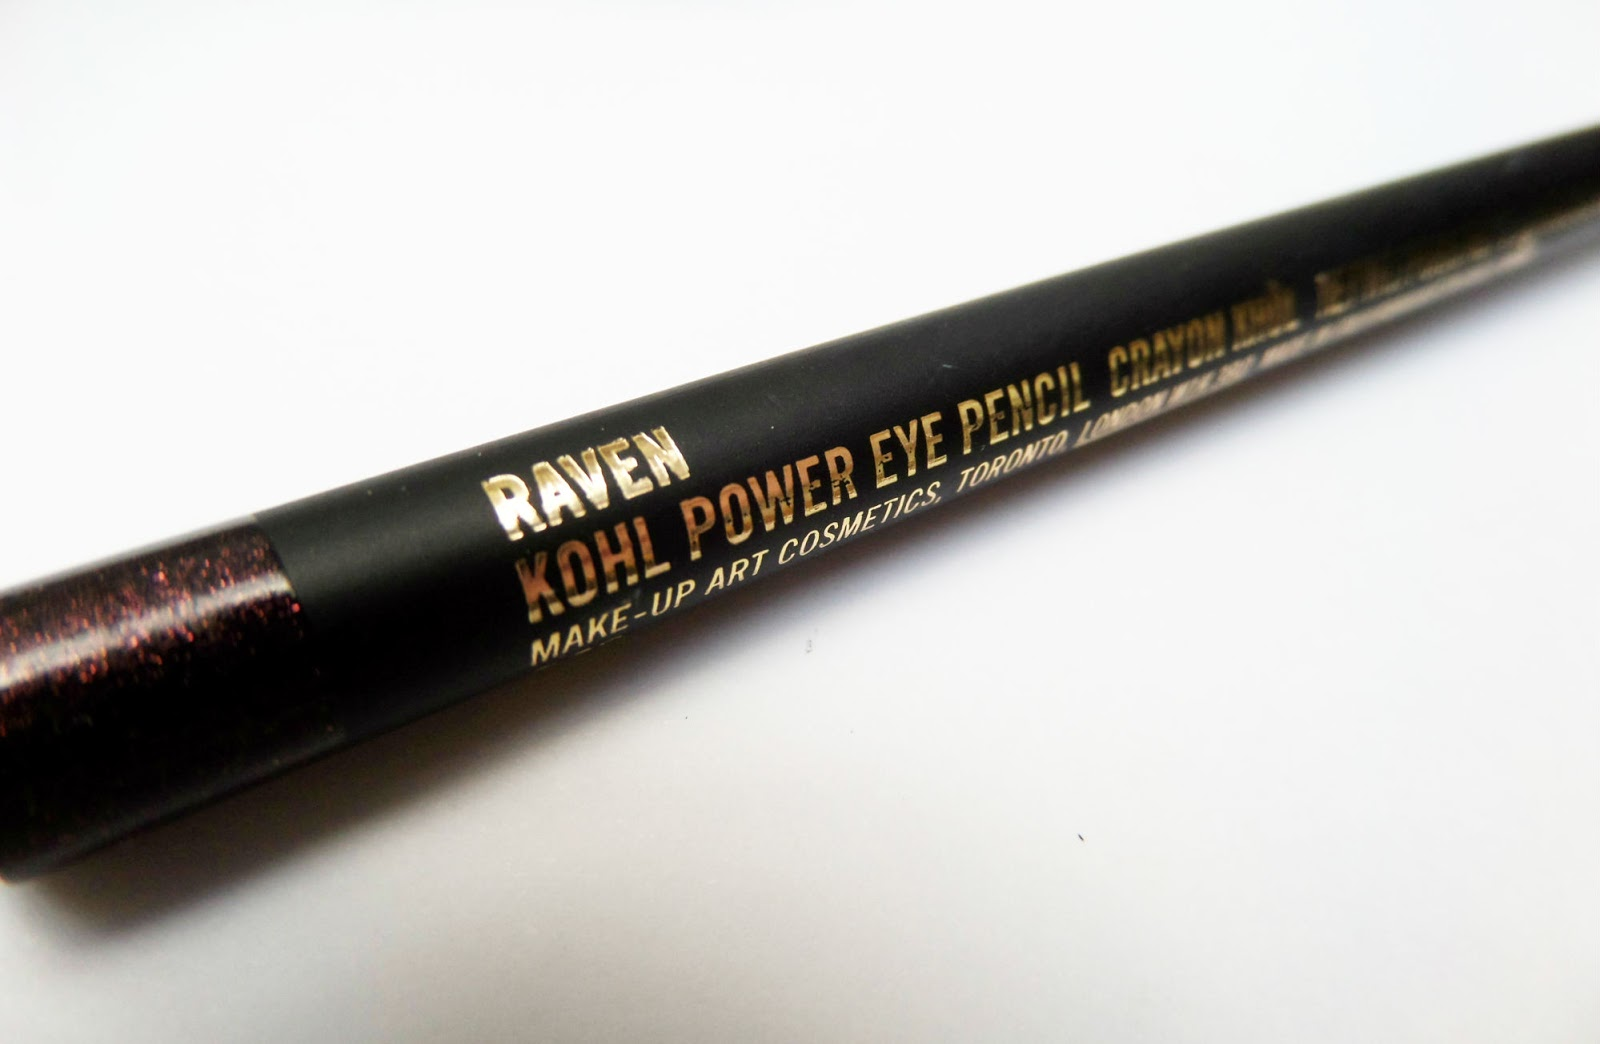 MAC Kohl Power Eye Pencil. Shade - Raven